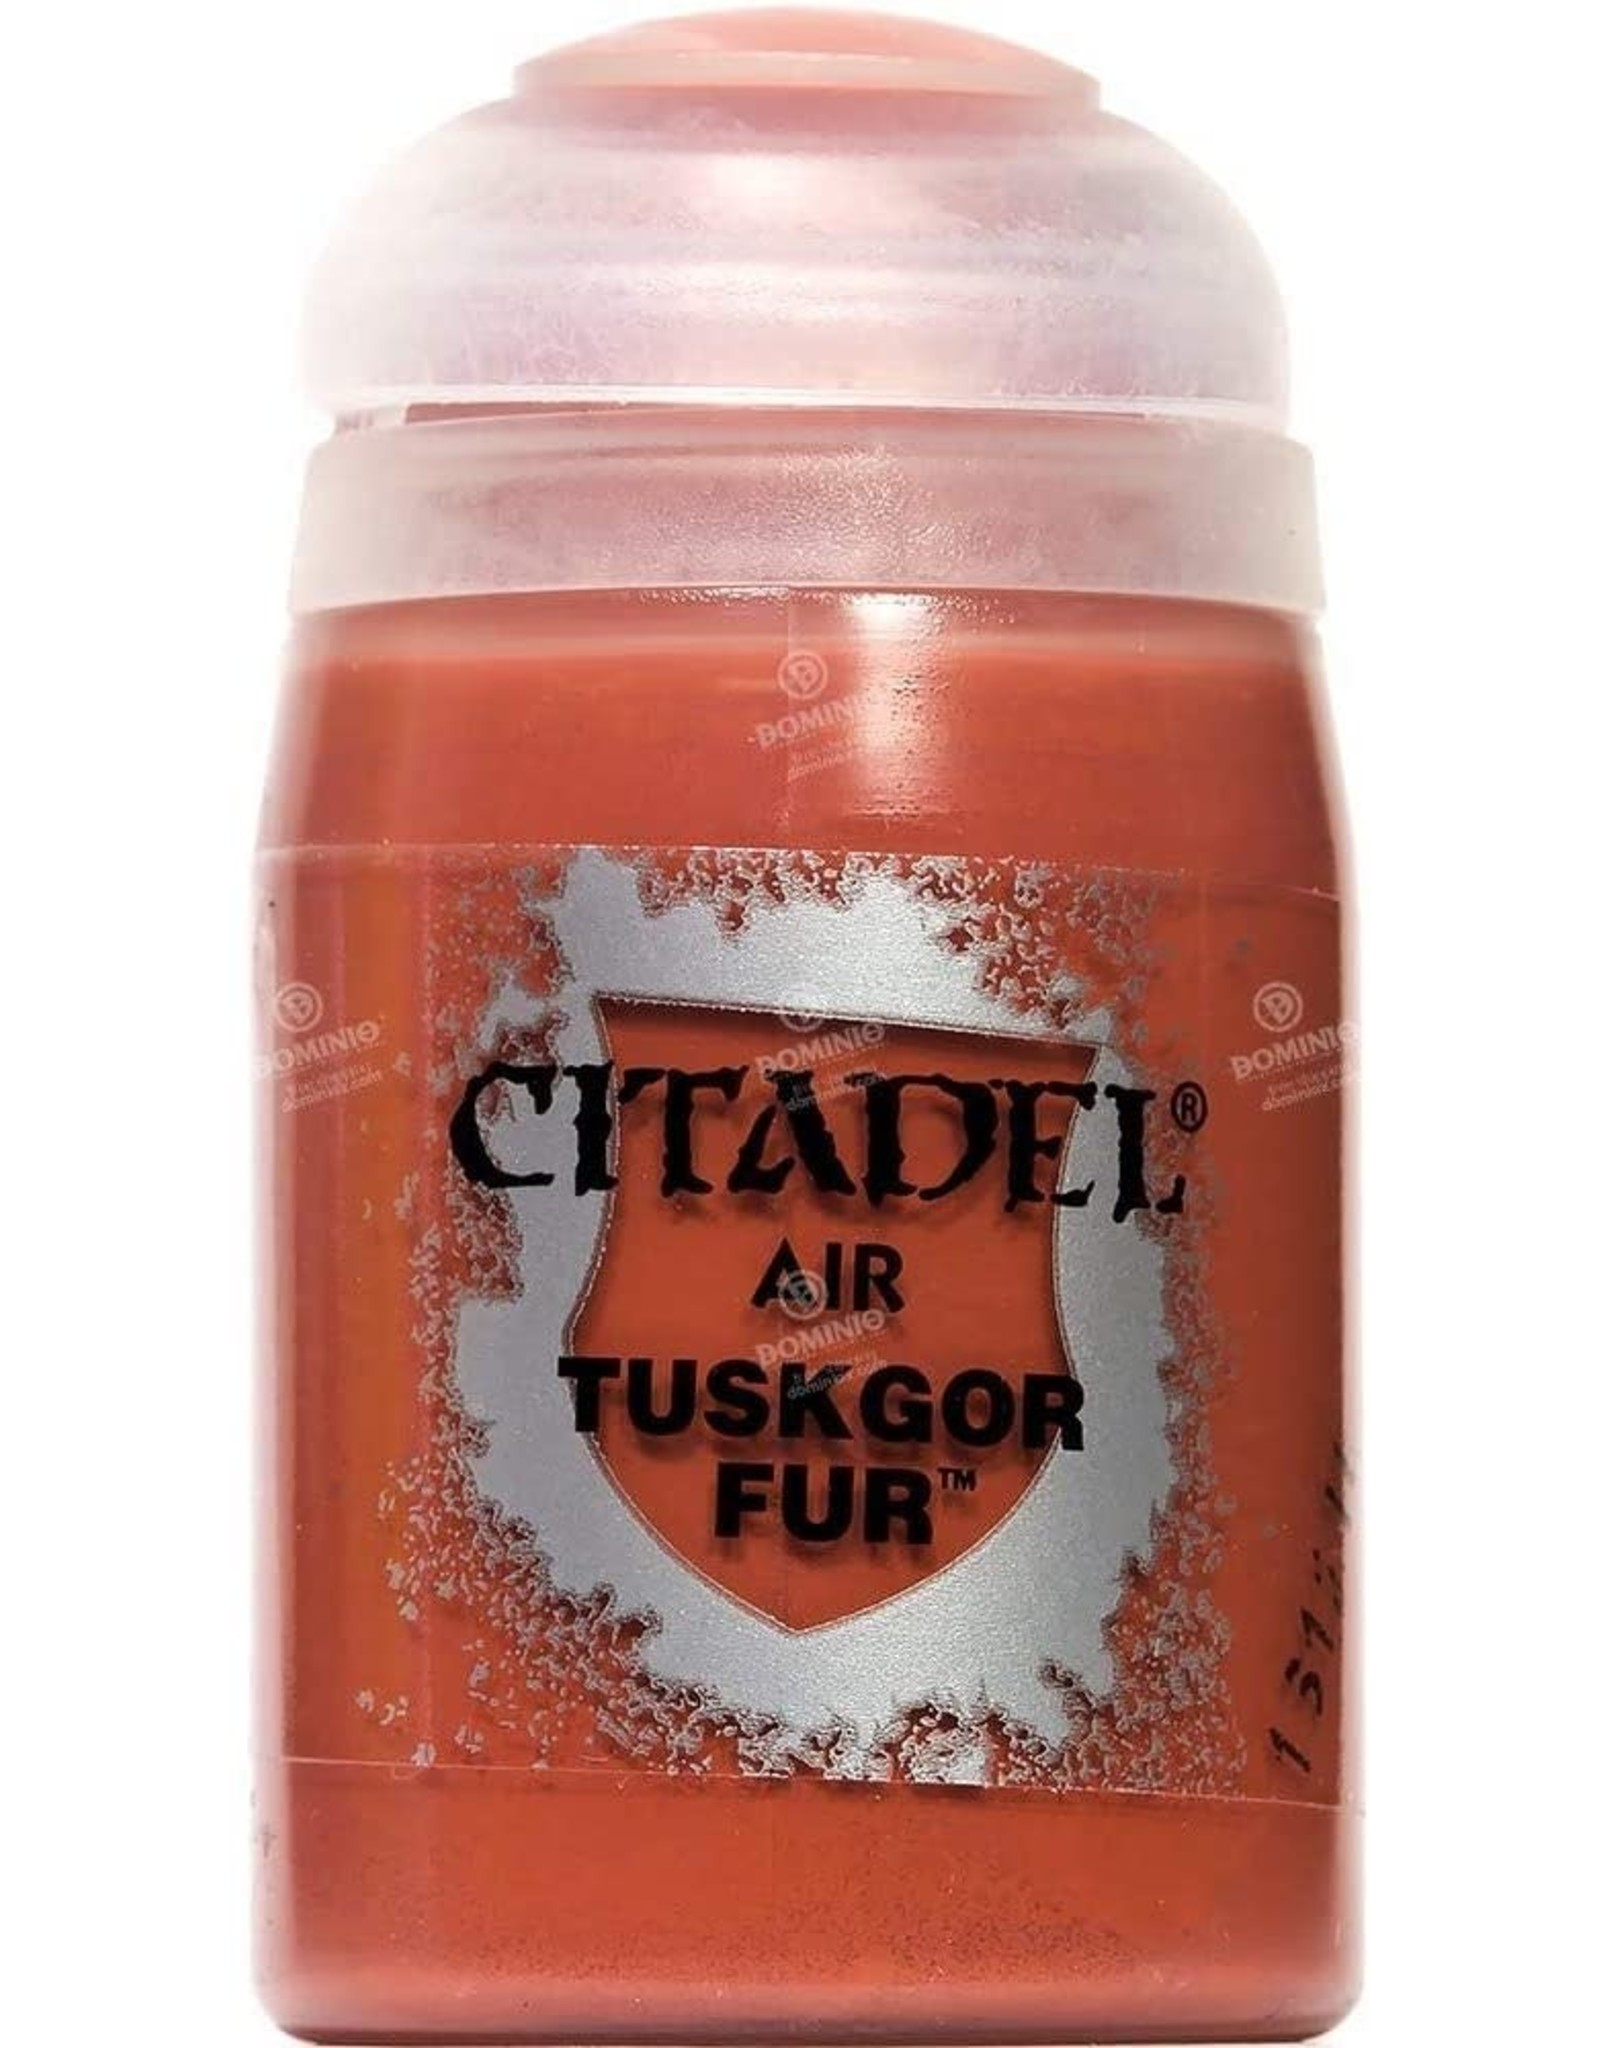 Games Workshop Citadel Paint: Tuskgor Fur Air (24 ml)